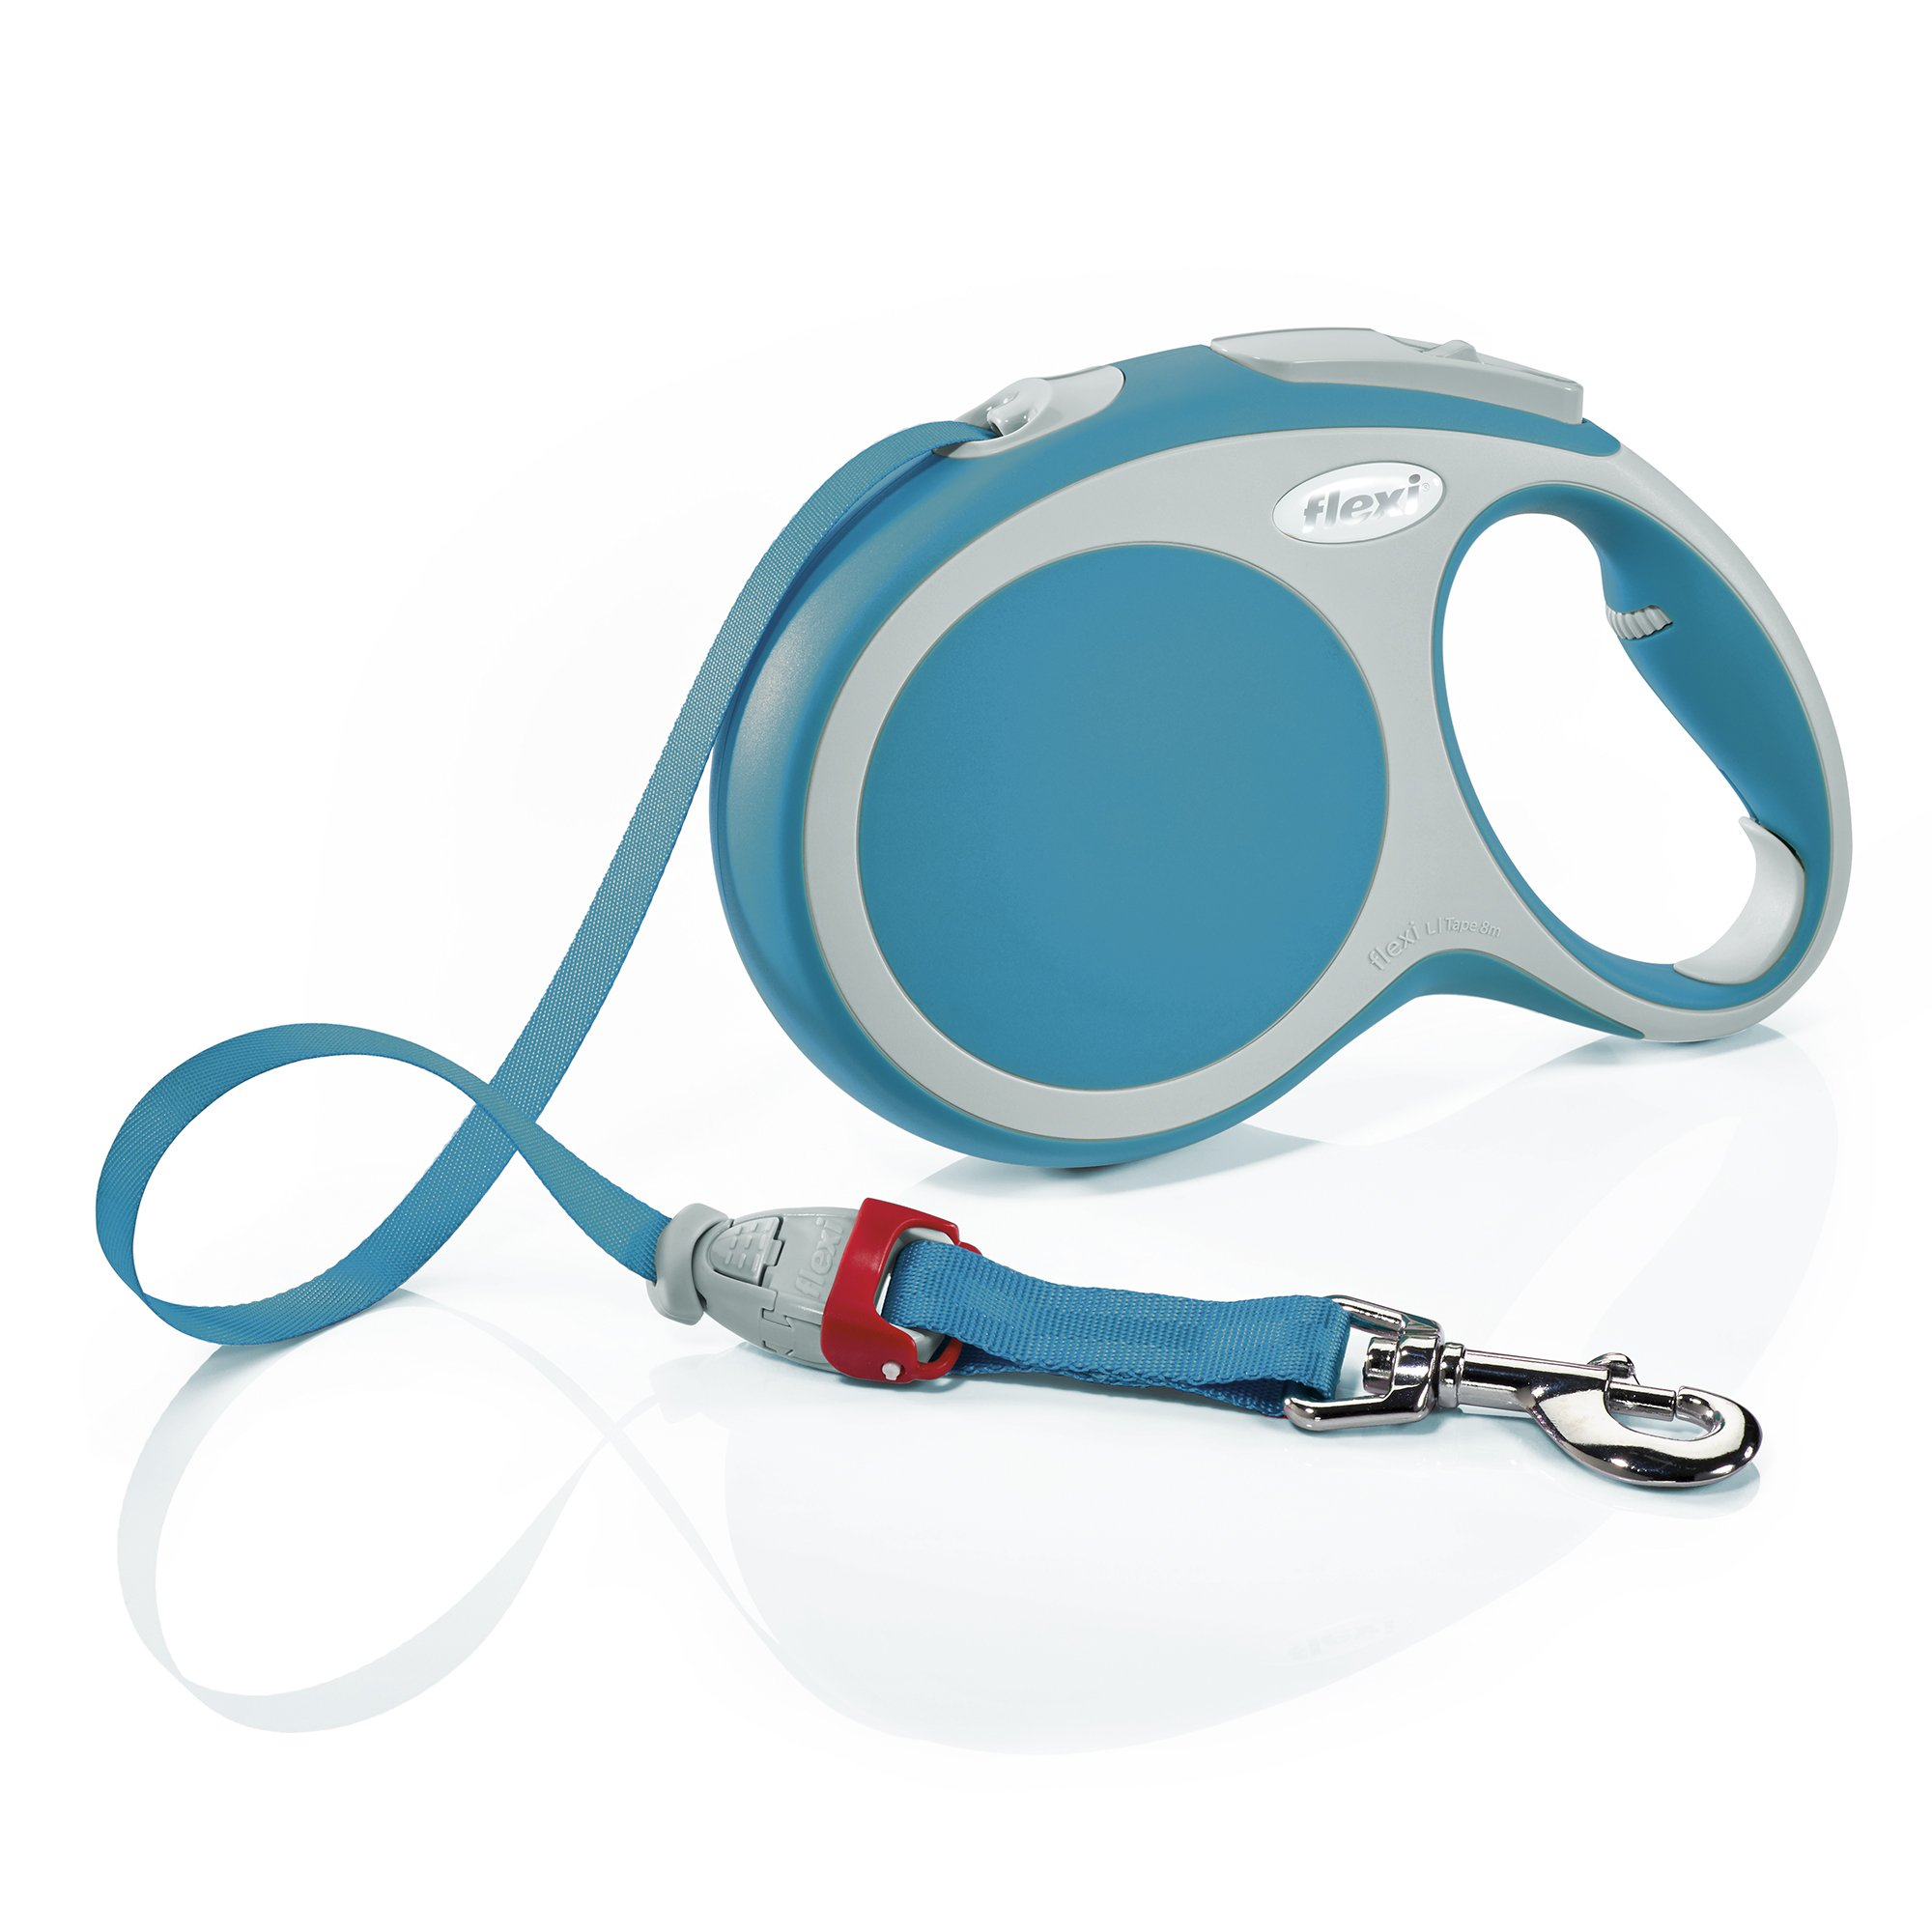 Flexi Vario Retractable Dog Leash (Tape), 26 ft, Large, Turquoise